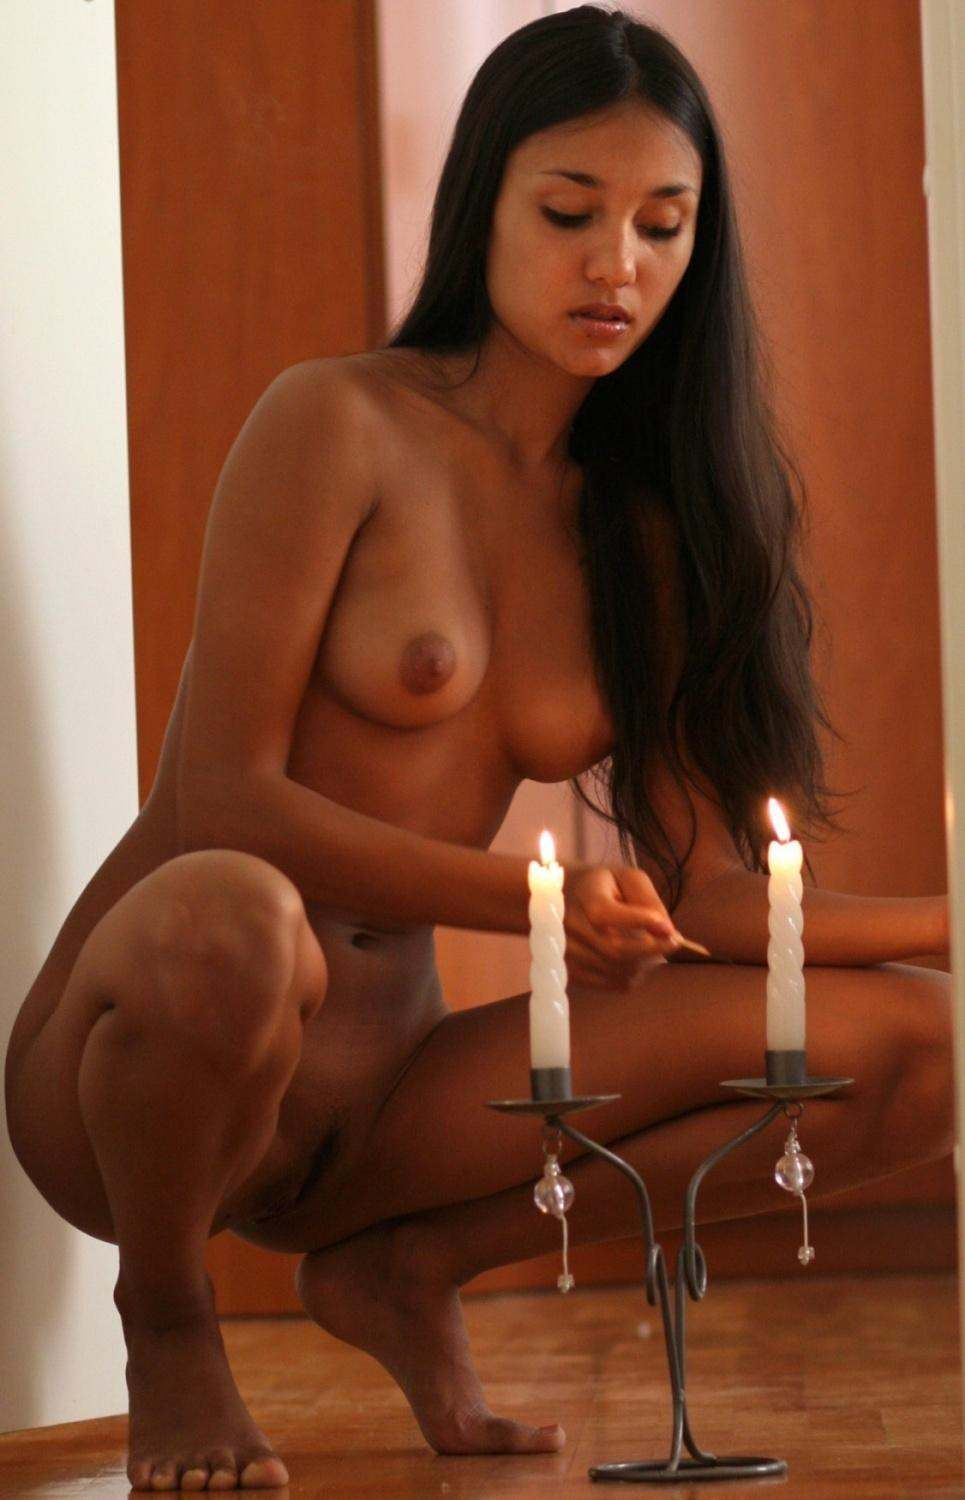 Phrase apologise, Mysore gals nude image simply